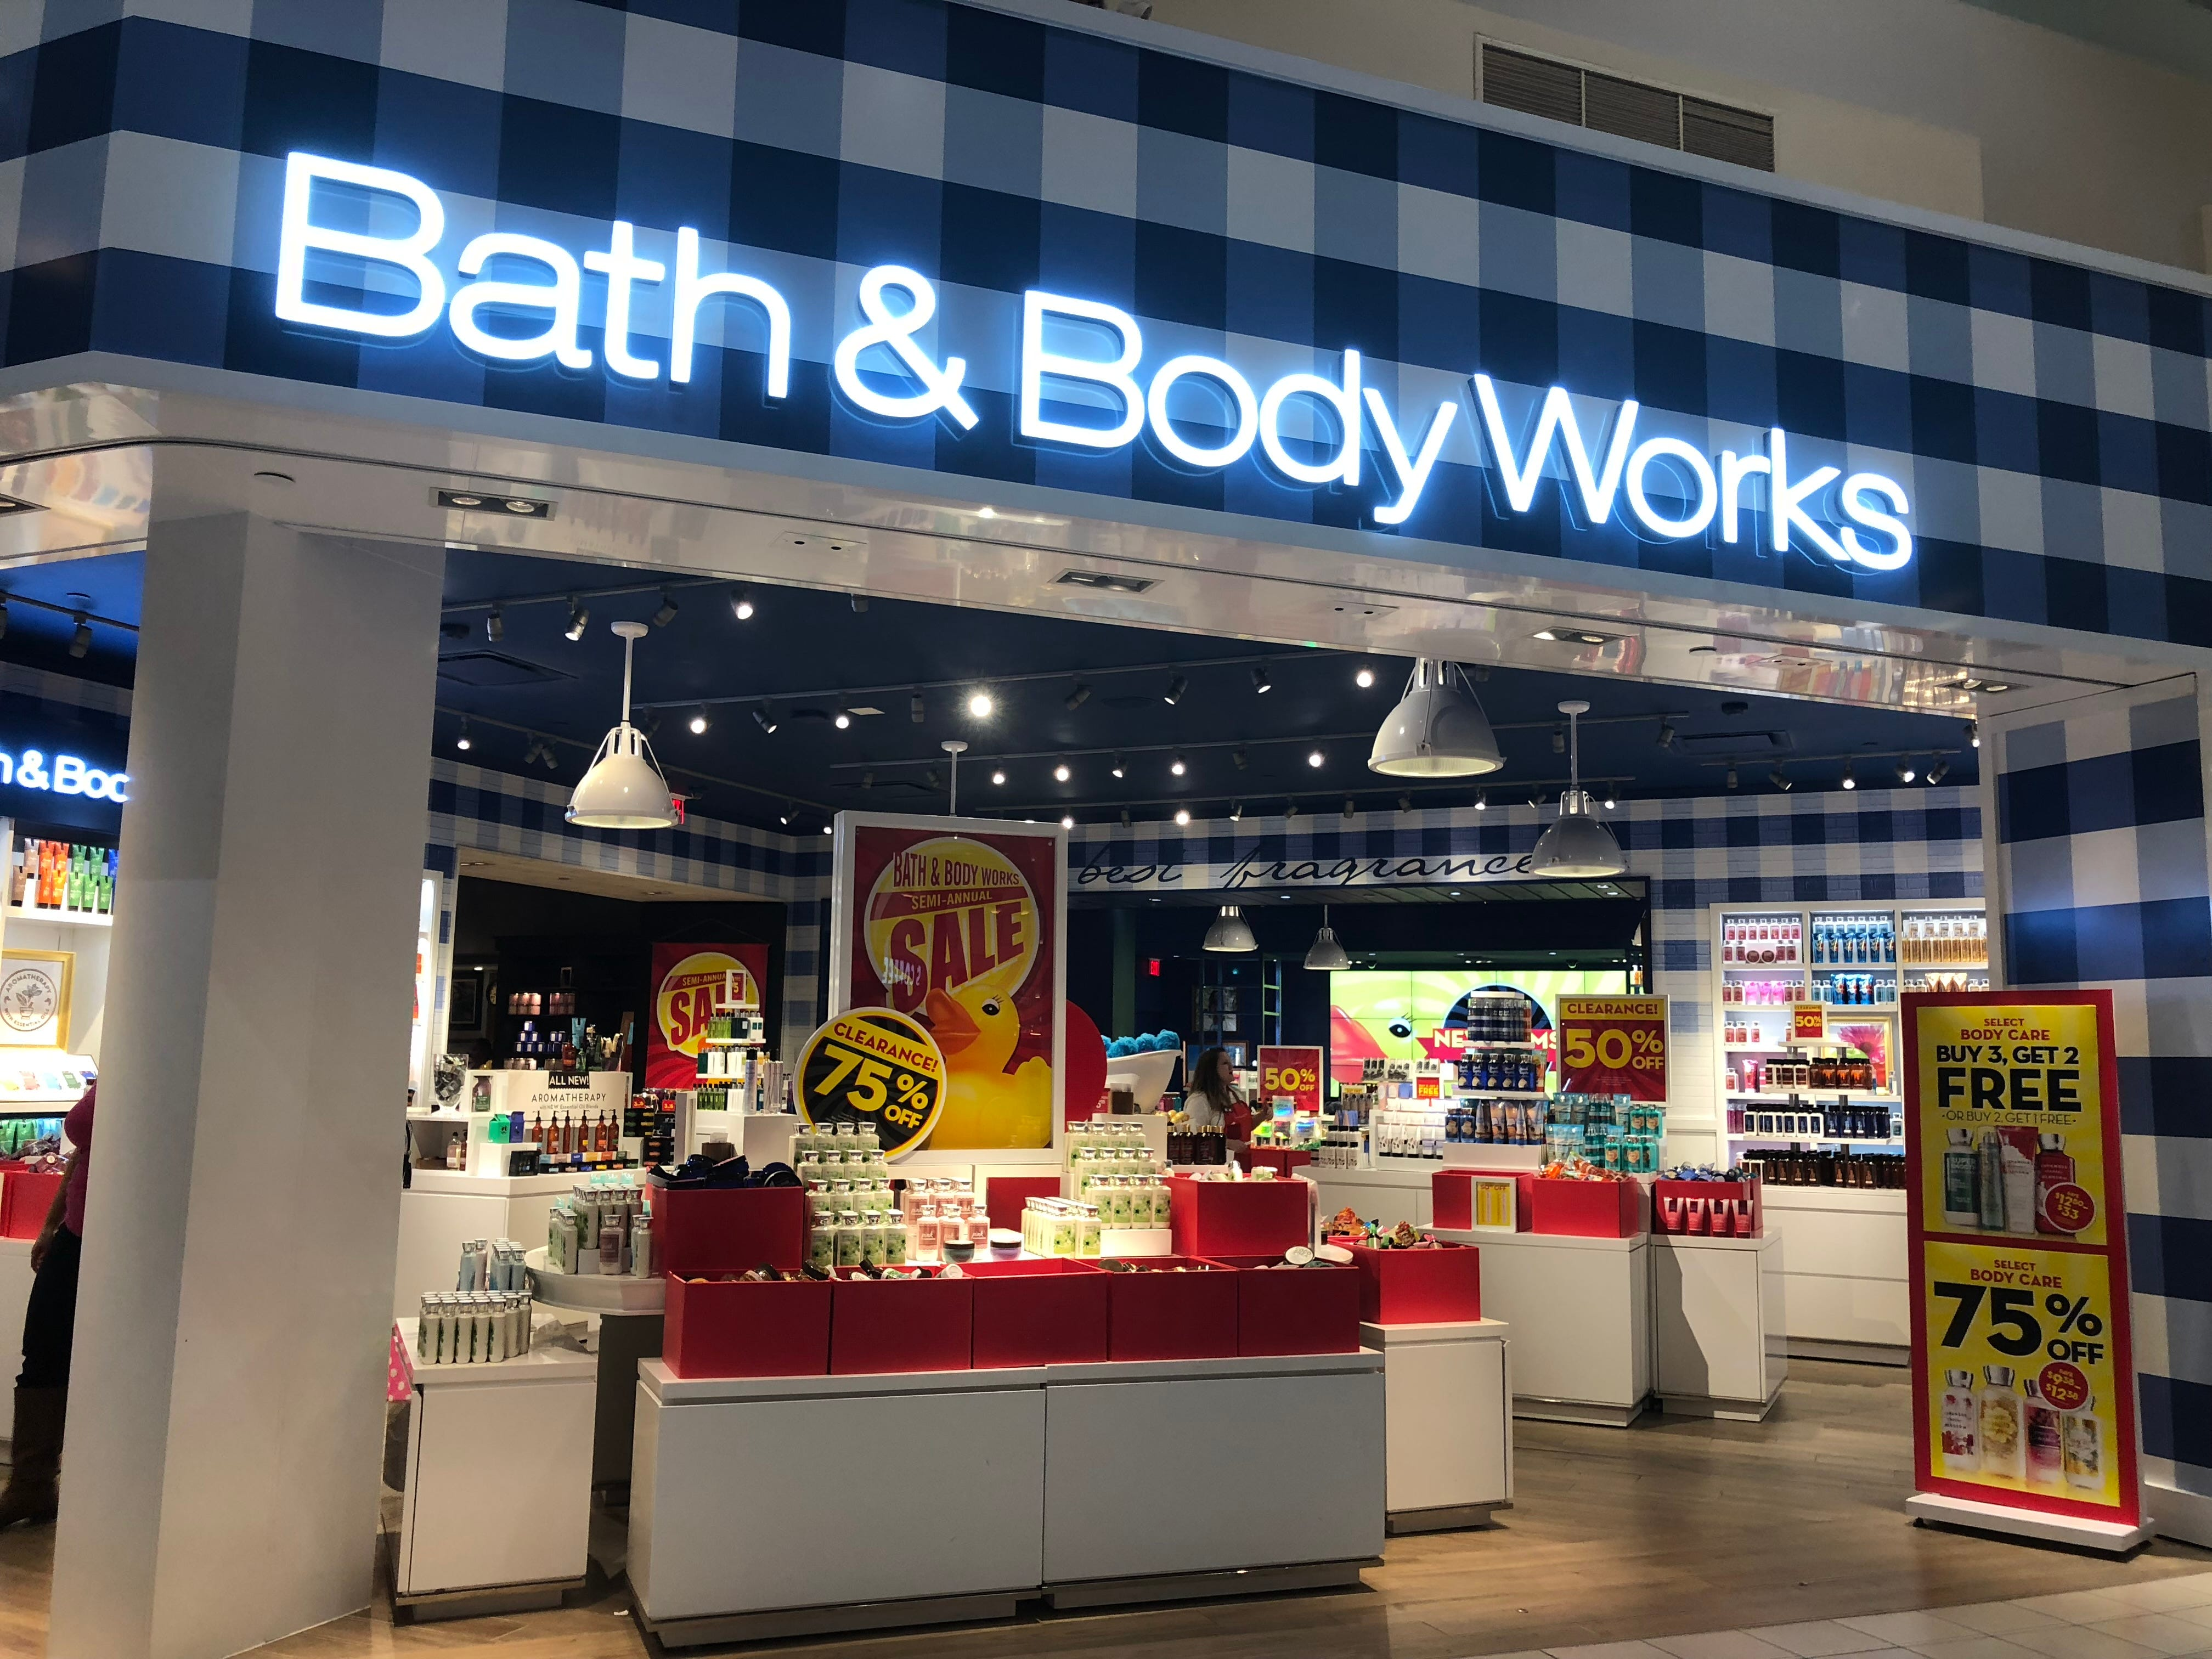 Bath & Body Works' annual Candle Day sale returns Friday with $9.95 candles; lasts longer amid COVID-19